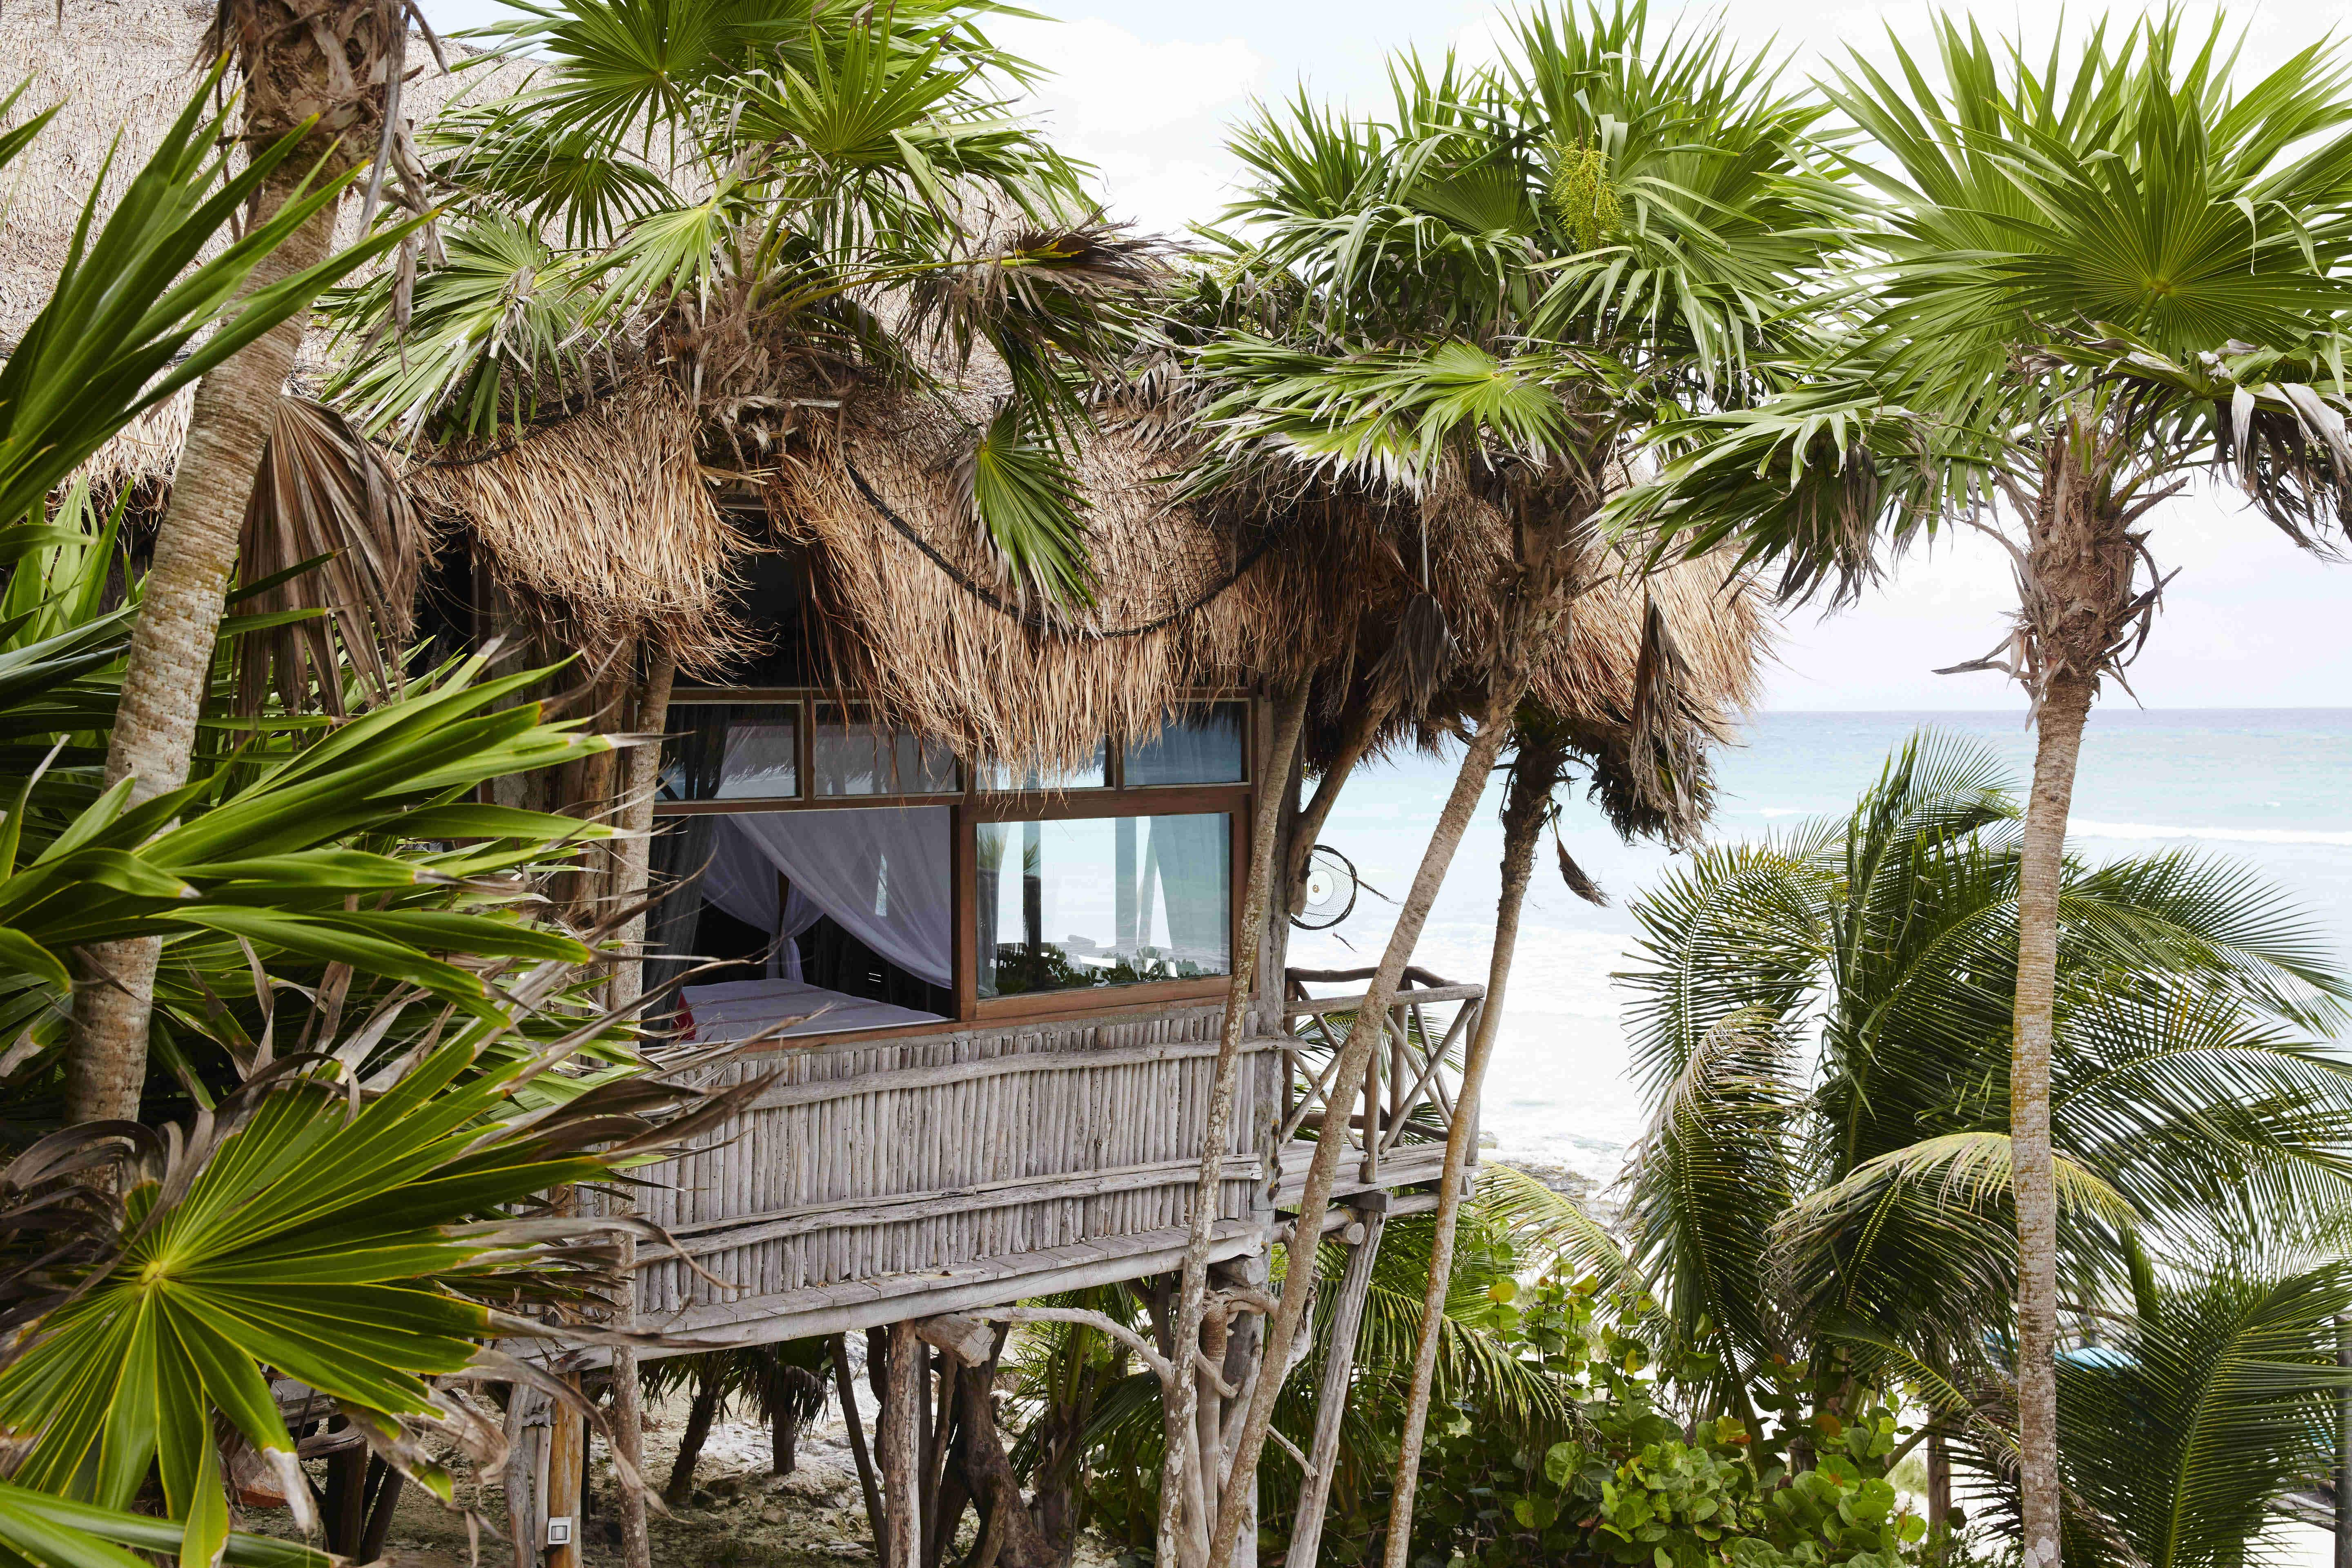 This magical treehouse is actually one of the world's quirkiest new hotel rooms